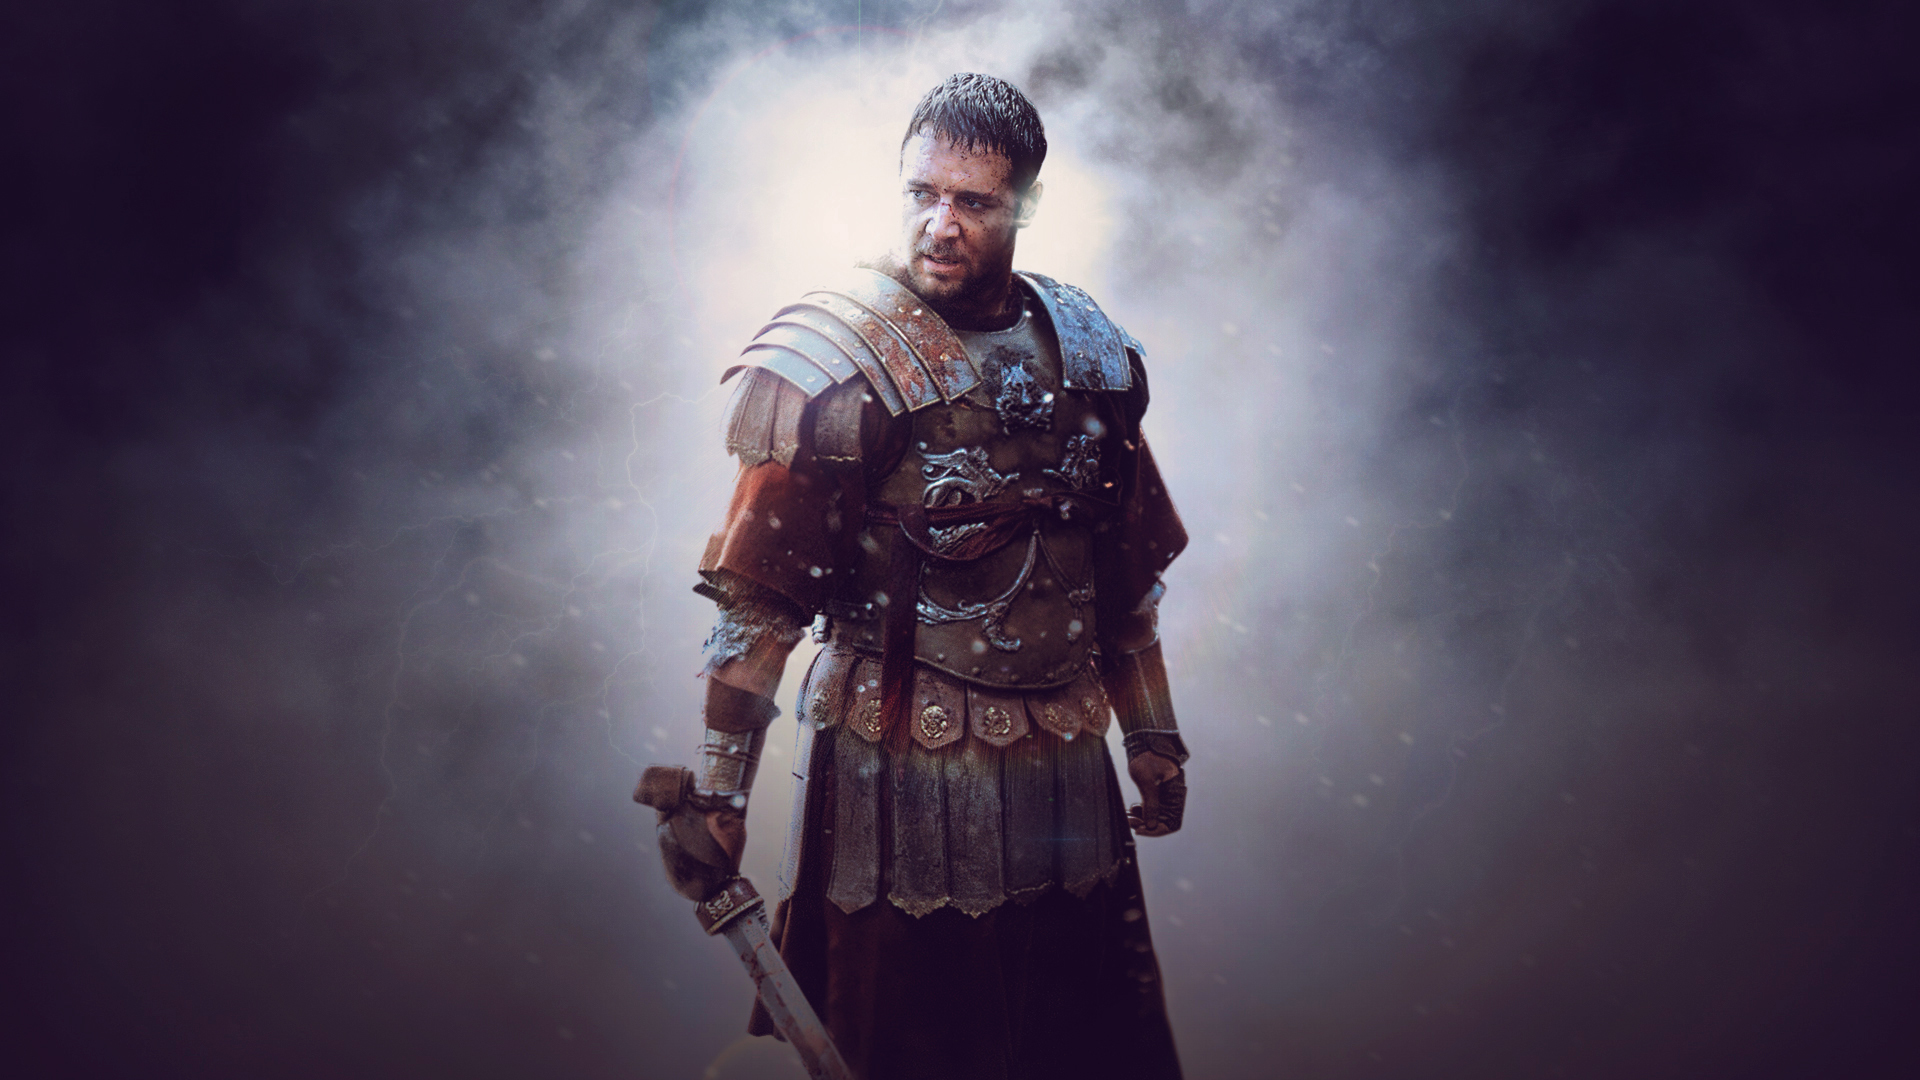 Movies Gladiator Movie Russell Crowe 1439x1403 Wallpaper: Download Wallpaper Gladiator, Rome, Maximus, Russell Crowe